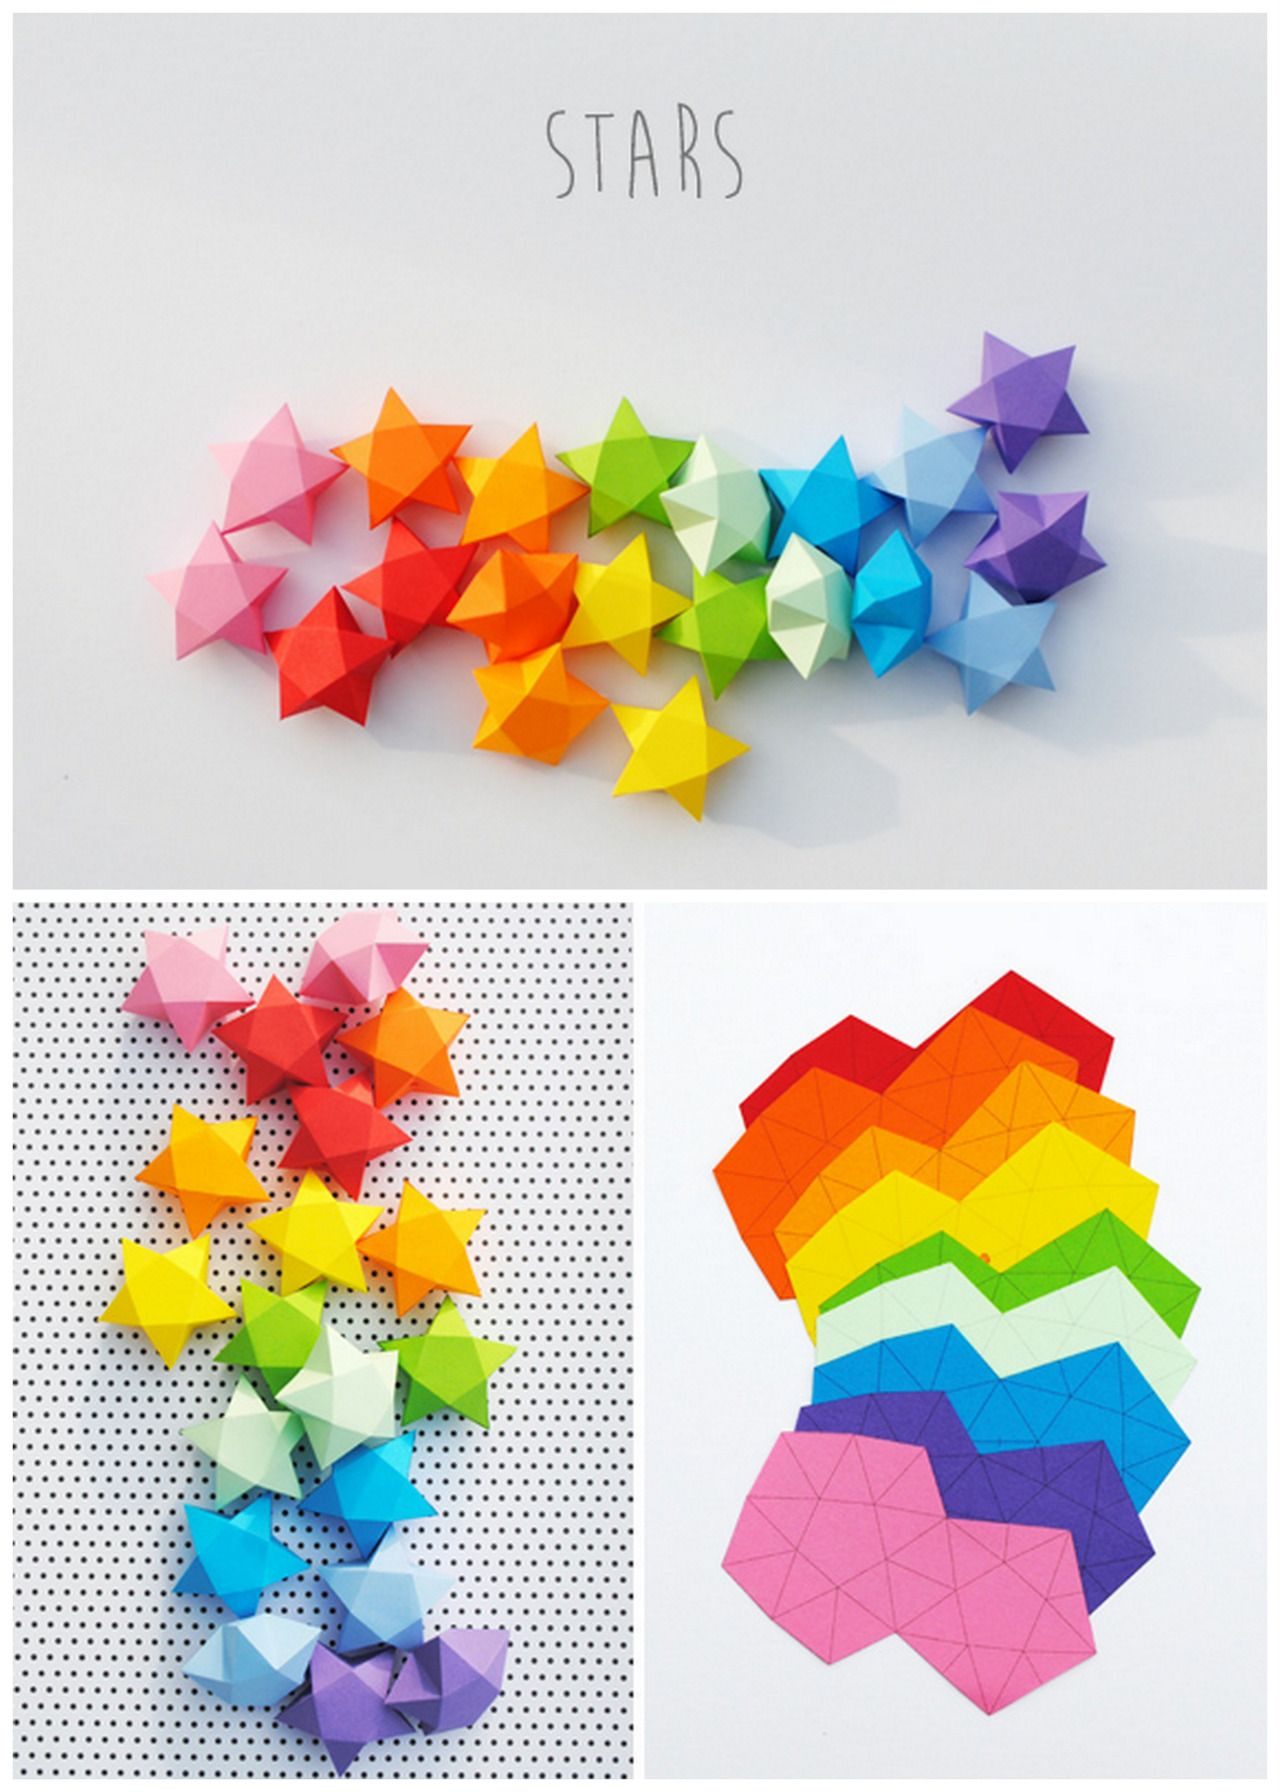 Diy cut and fold lucky paper stars tutorial and template from diy cut and fold lucky paper stars tutorial and template from minieco here jeuxipadfo Choice Image